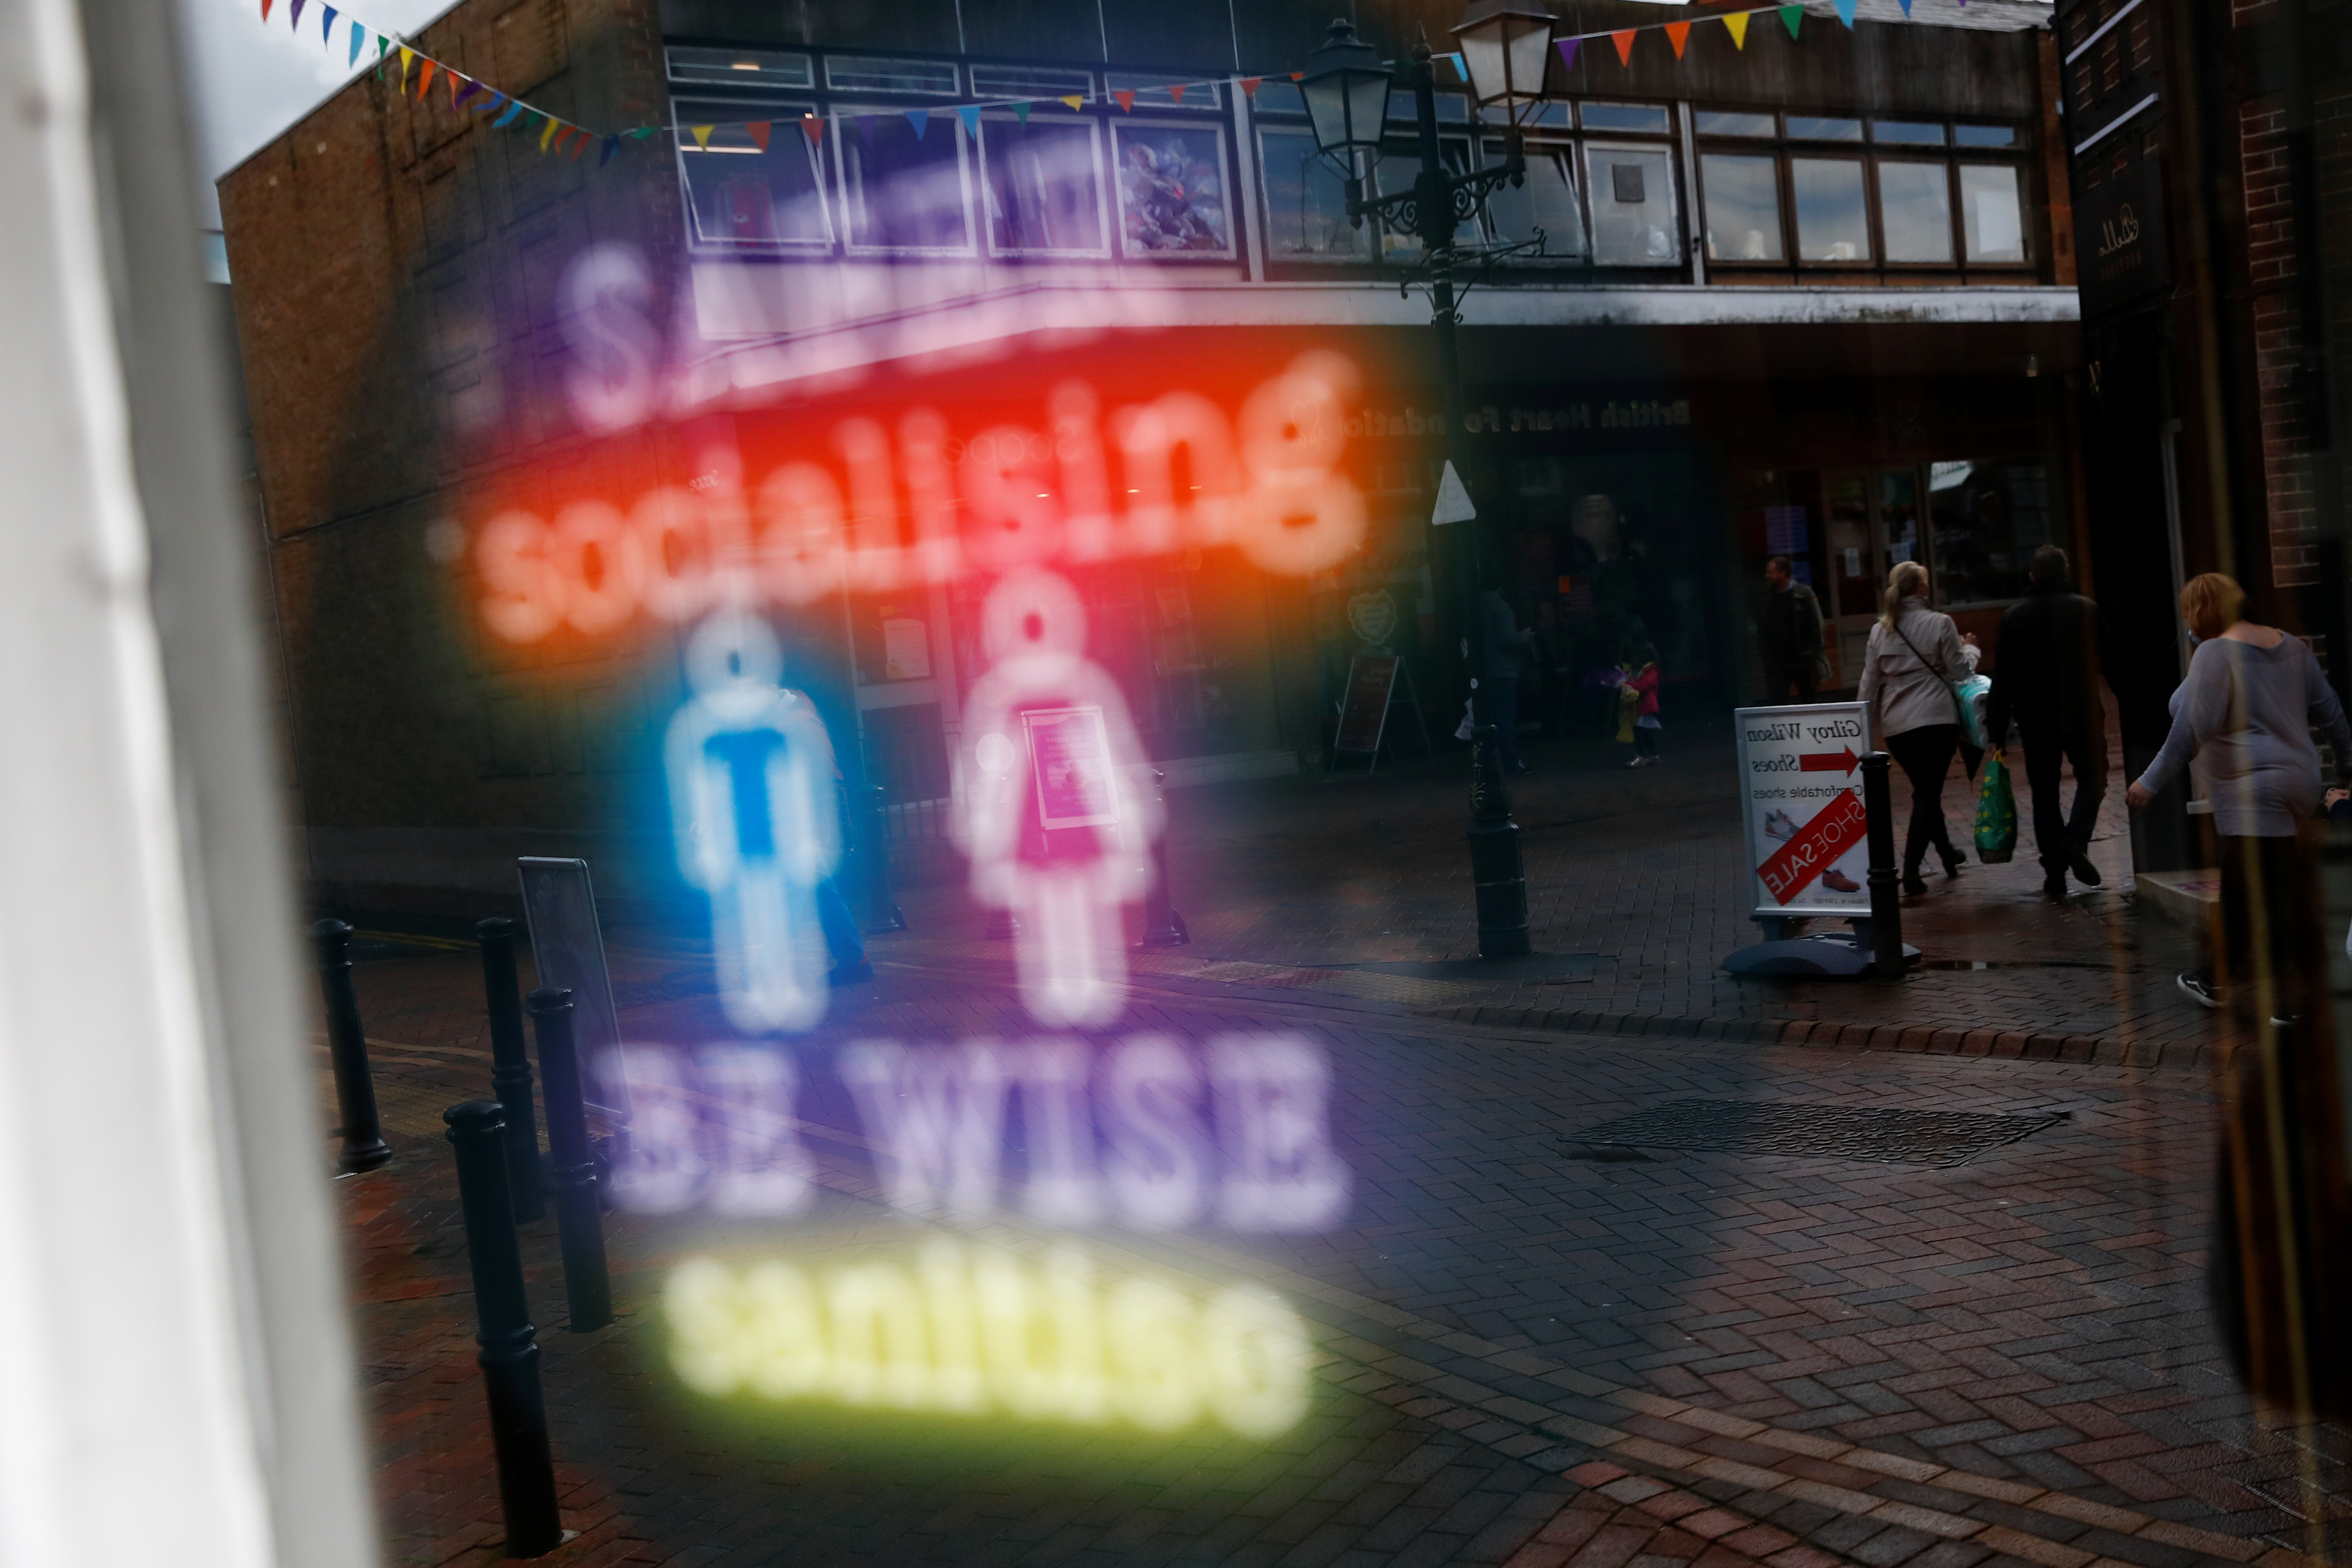 A sign advising sanitising is seen at The Swinging Witch, as lockdown eases amid the coronavirus disease (COVID-19) pandemic, in Northwich, Cheshire, Britain, May 15, 2021. REUTERS/Jason Cairnduff